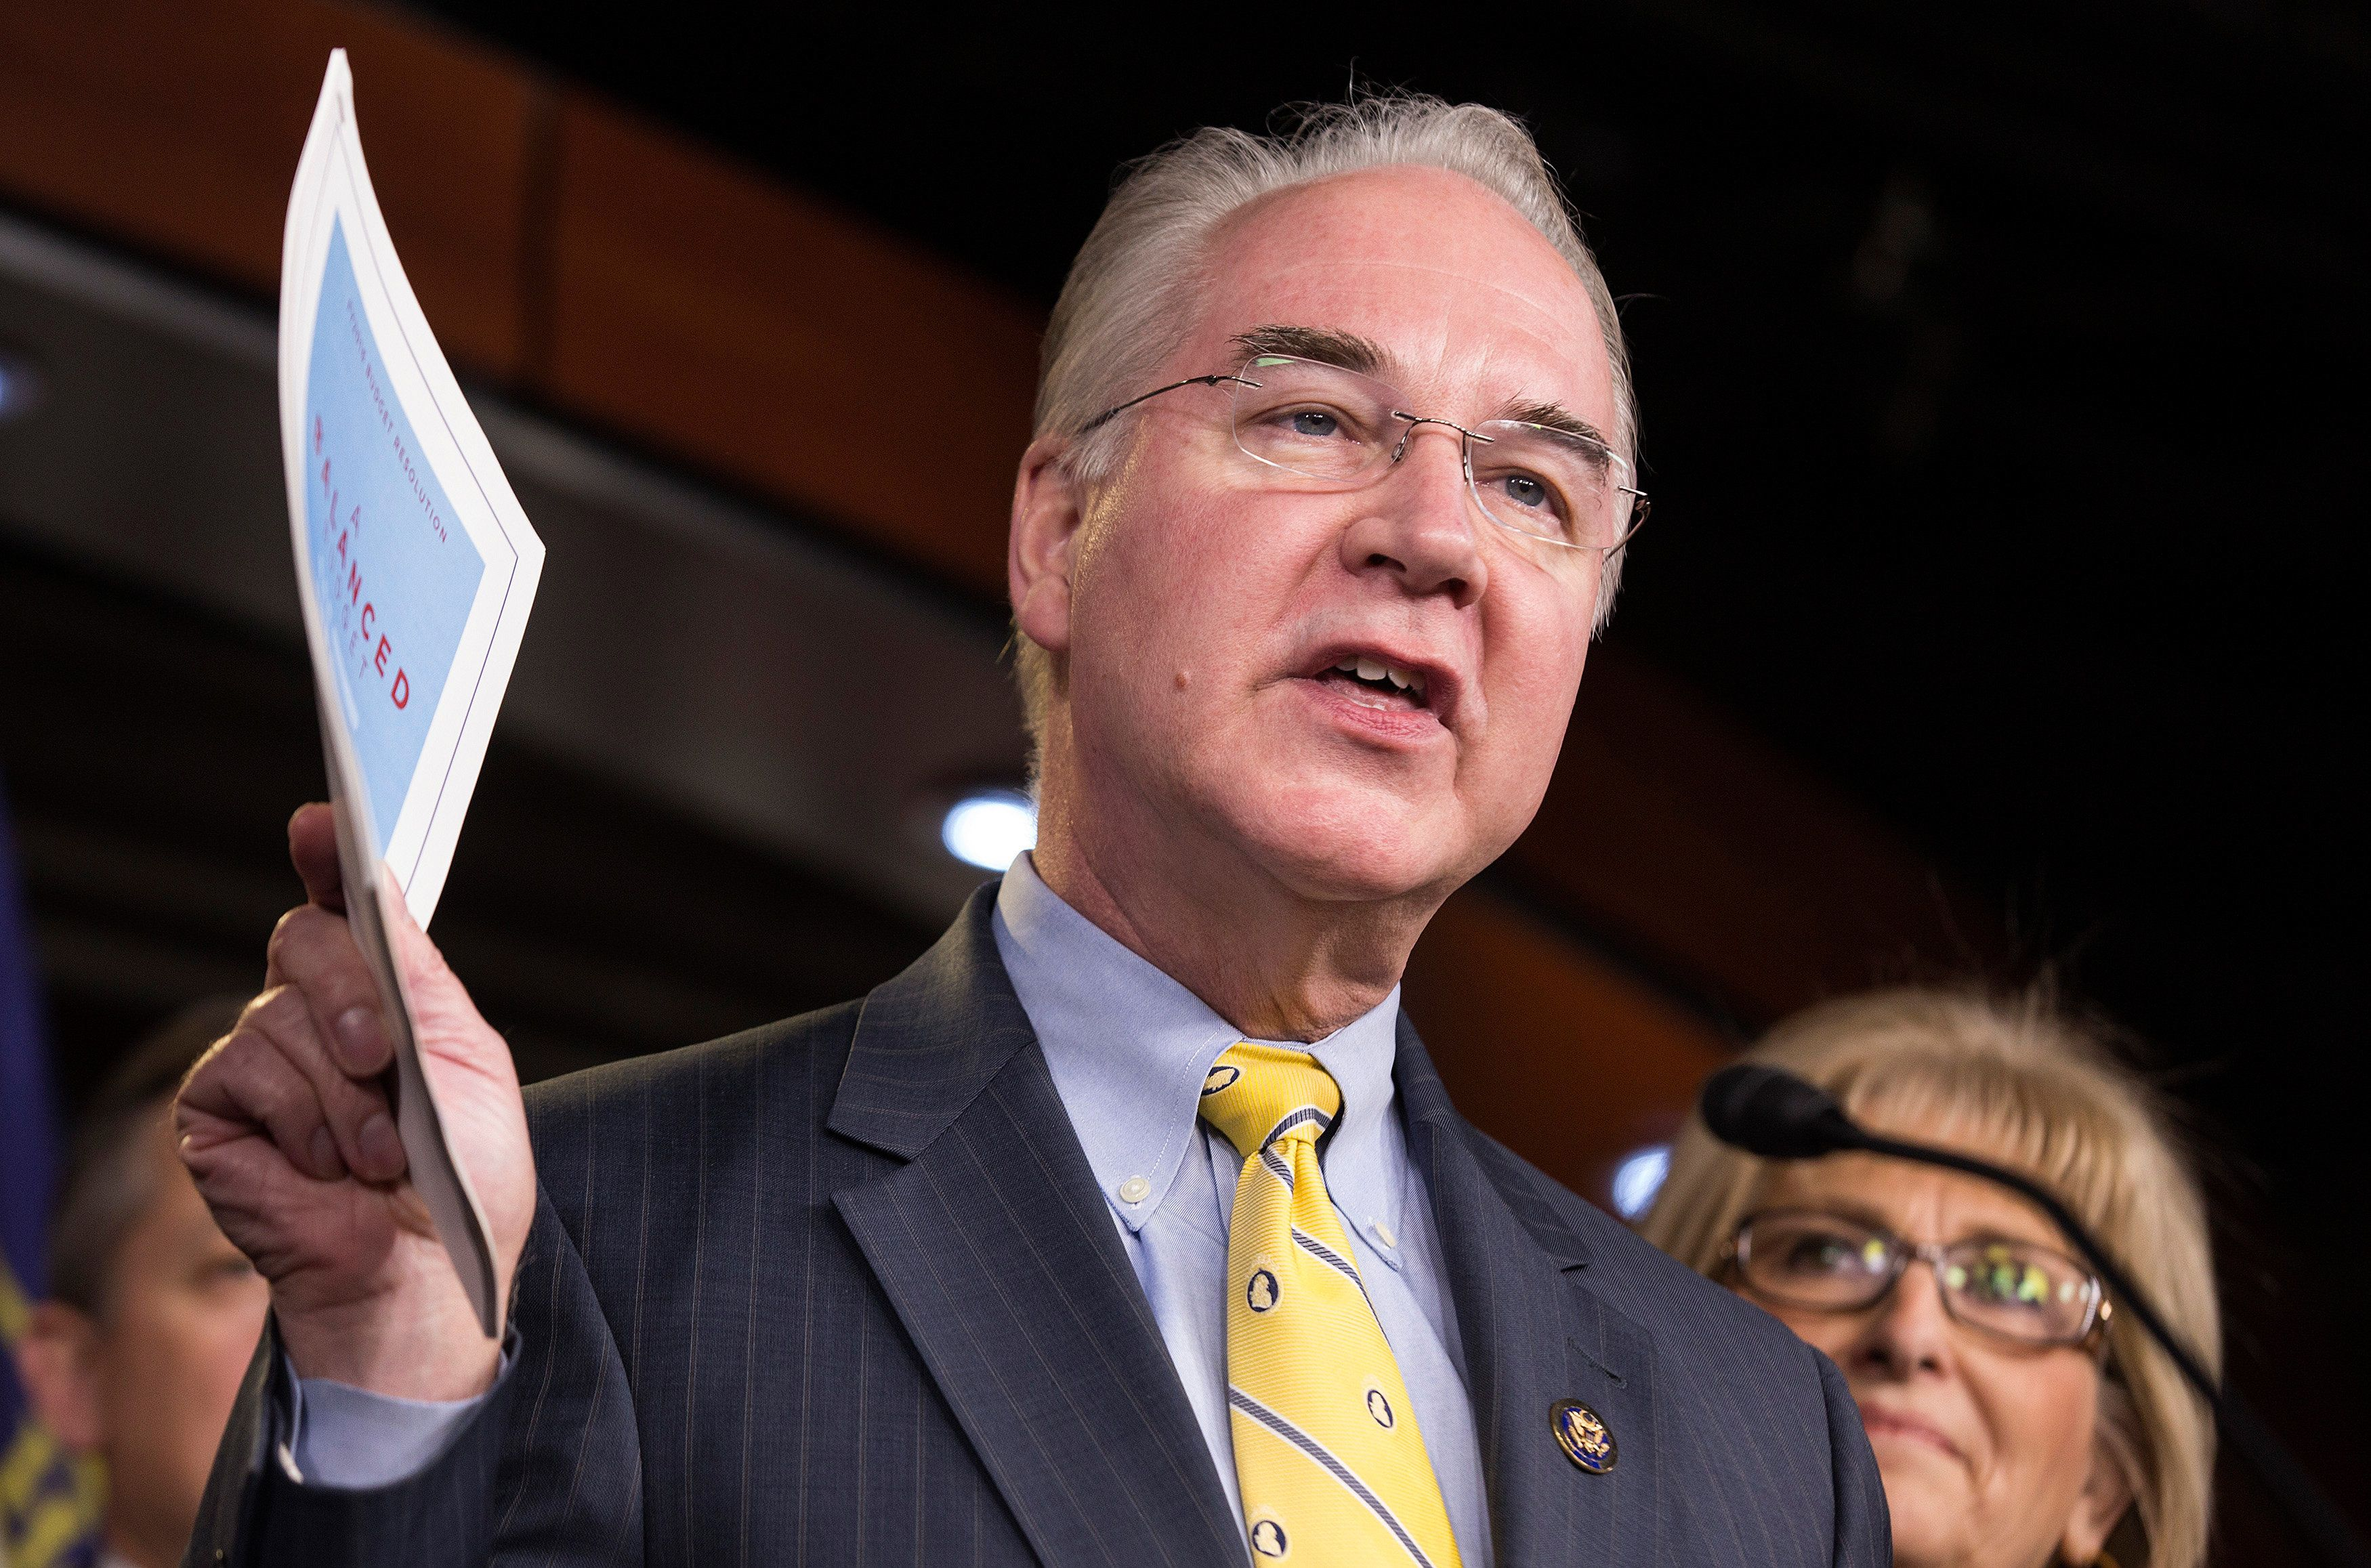 Chairman of the House Budget Committee Tom Price (R-GA) announces the House Budget during a press conference on Capitol Hill in Washington on March 17, 2015.      REUTERS/Joshua Roberts/File Photo